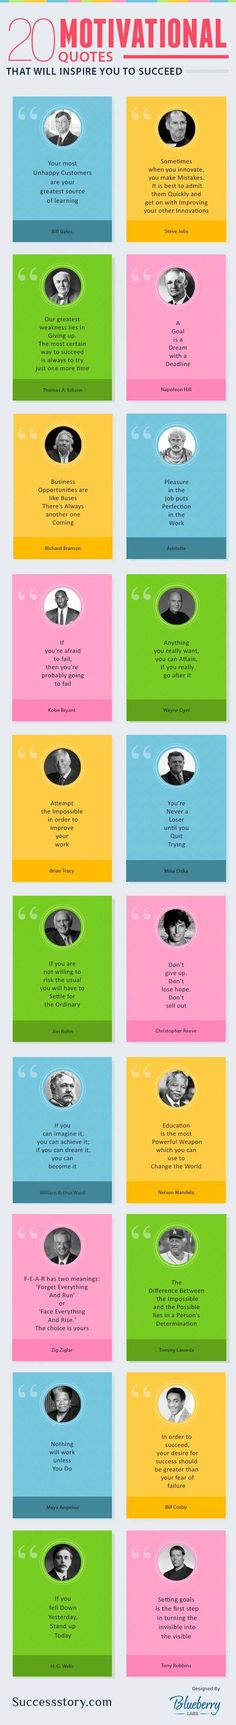 20 Motivational Quotes That Will Inspire You to Succeed Infographic - http://elearninginfographics.com/motivational-quotes-inspire-success-infographic/